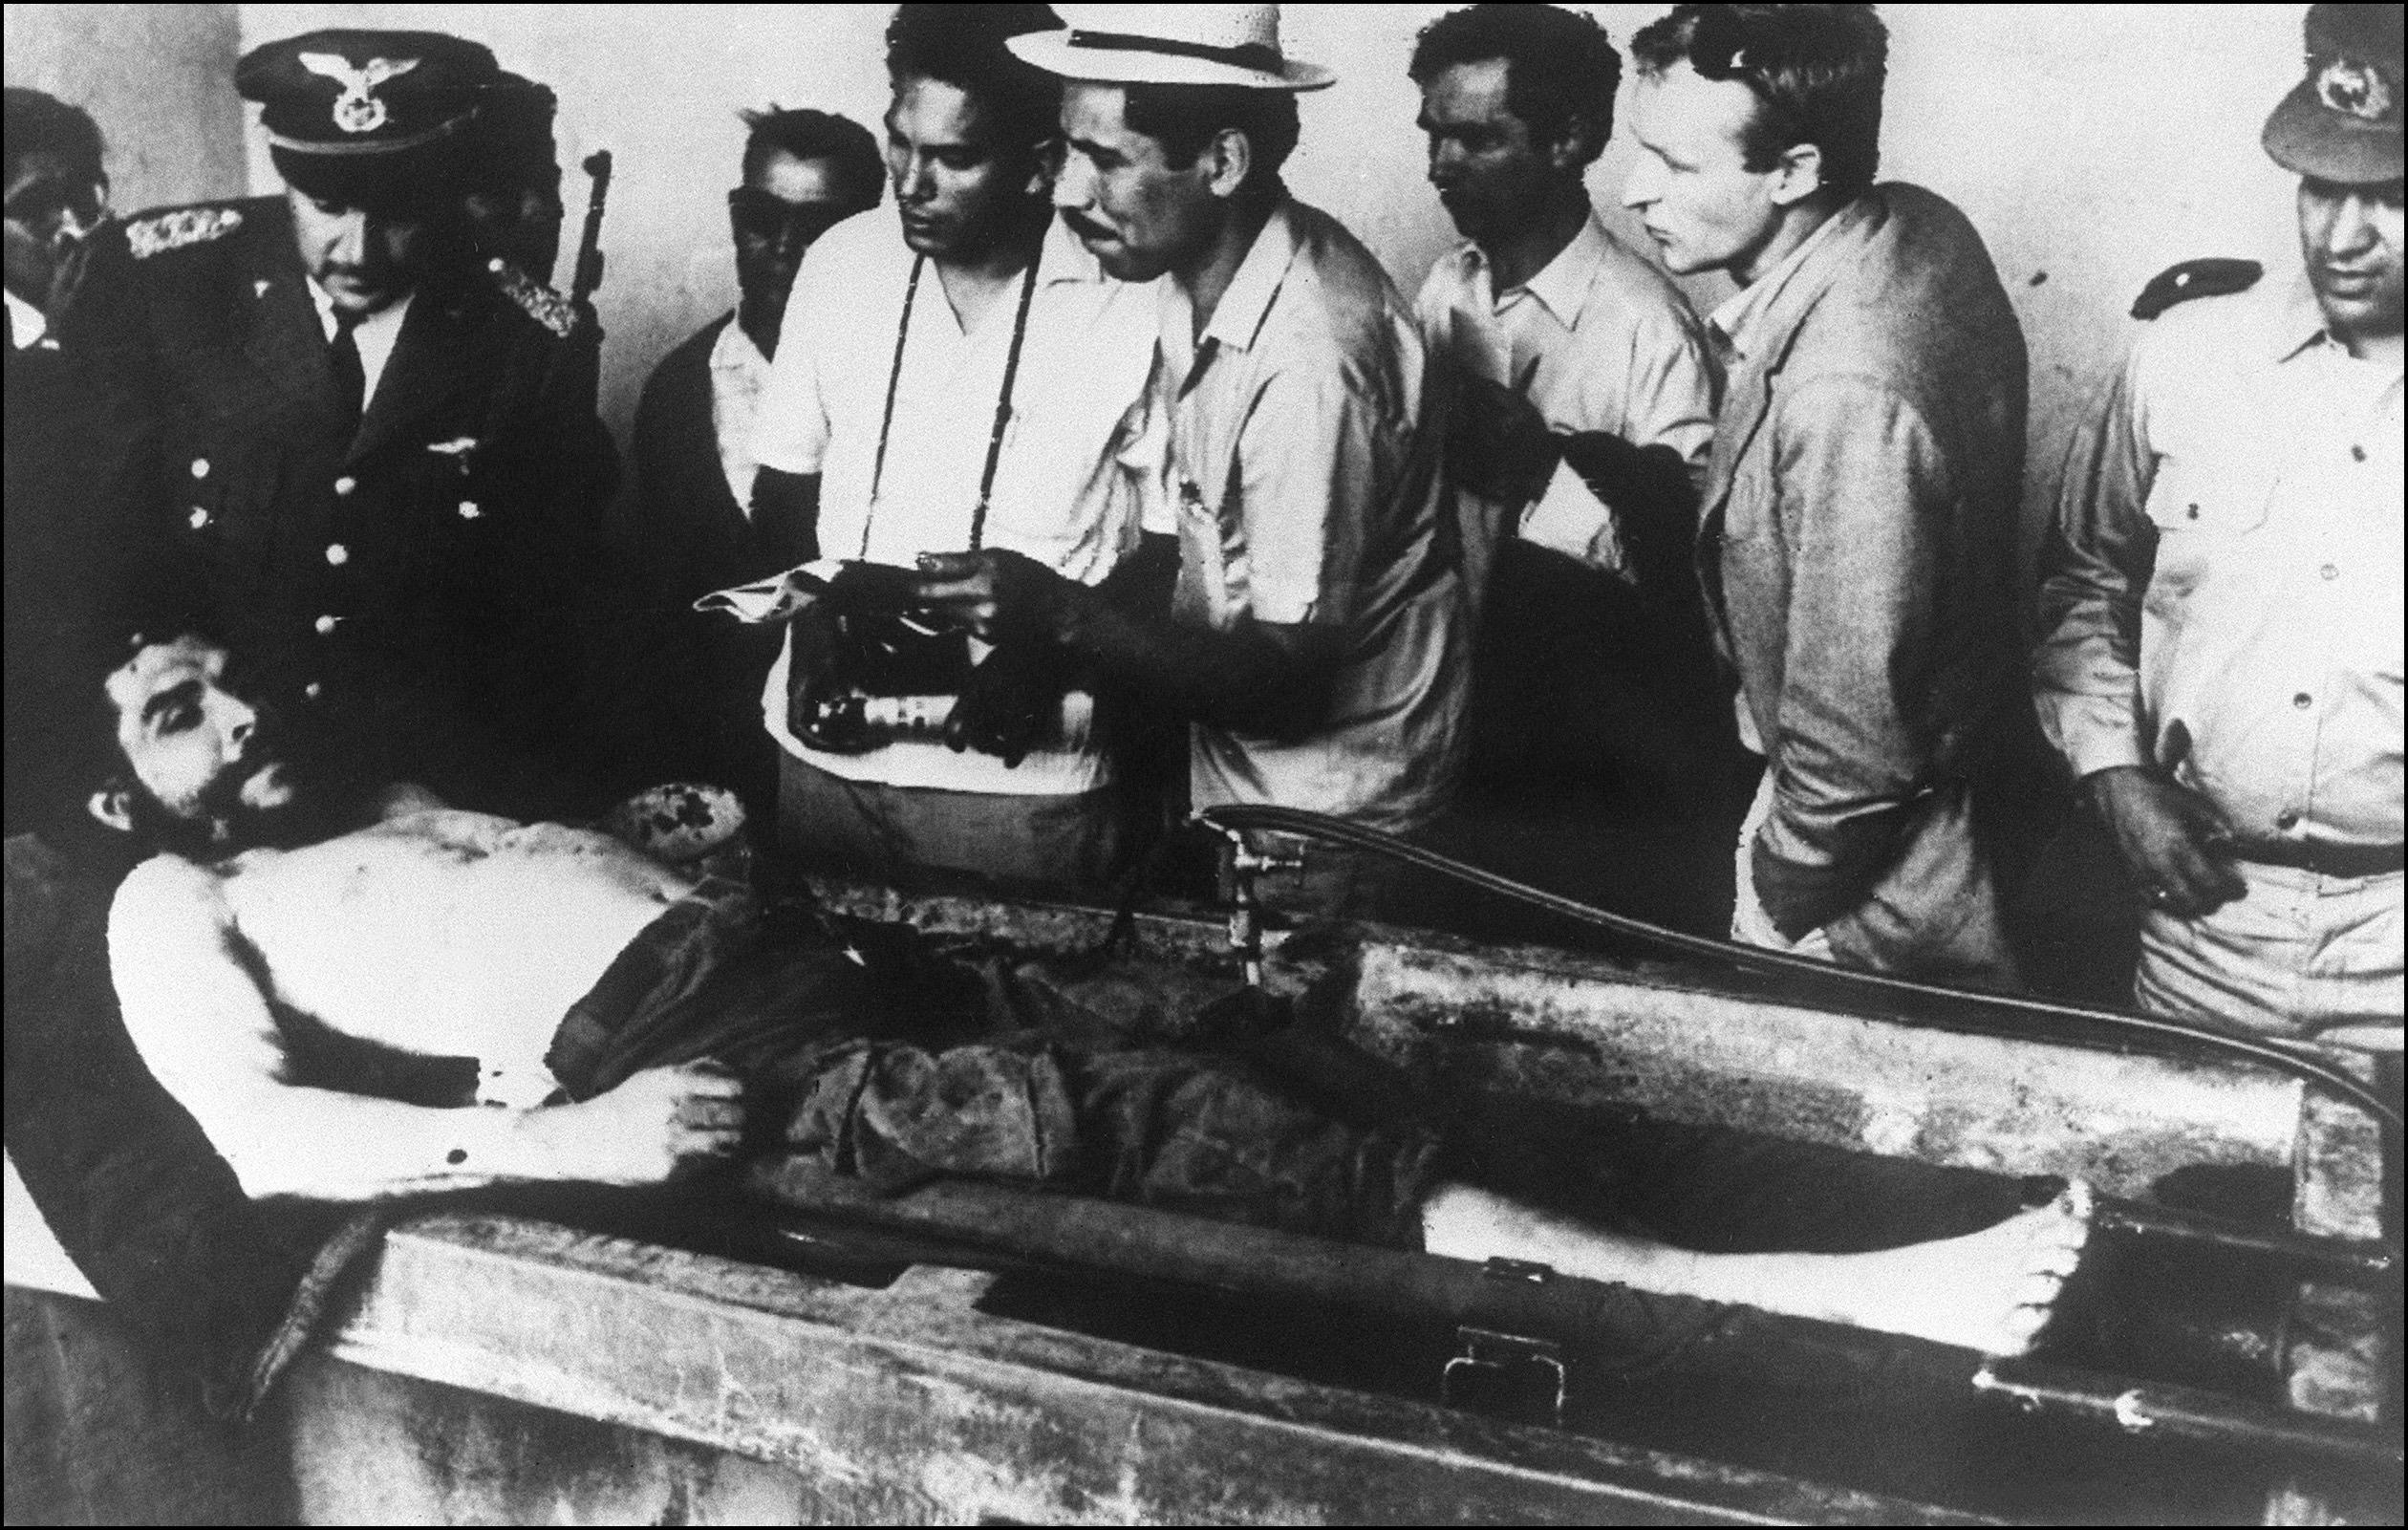 "The body of Ernesto ""Che"" Guevara, the Argentine-born hero of Latin American revolutionaries, surrounded by Bolivian army officers and journalists, is on public display in the makeshift morgue 10 October 1967 in Vallegrande. He was captured 08 October and shot dead 09 October by Bolivian forces. ""Che"" Guevara, the 39-year-old firebrand, was formerly the confident of Cuban leader Fidel Castro. In 1965 he left Cuba to establish guerrilla groups in Latin America.# Des militaires boliviens présentent le 10 octobre 1967 à Vallegrande à la presse internationale le corps d'Ernesto ""Che"" Guevara, d'origine argentine. Après avoir pris part à la Révolution cubaine et lancé à partir de 1965 des foyers insurrectionnels en Amérique Latine, il a été pourchassé par l'armée bolivienne à l'aide des agents de la CIA. Capturé le 08 octobre, il fut exécuté le lendemain et enterré dans le secret. (FILM) AFP PHOTO / AFP PHOTO"